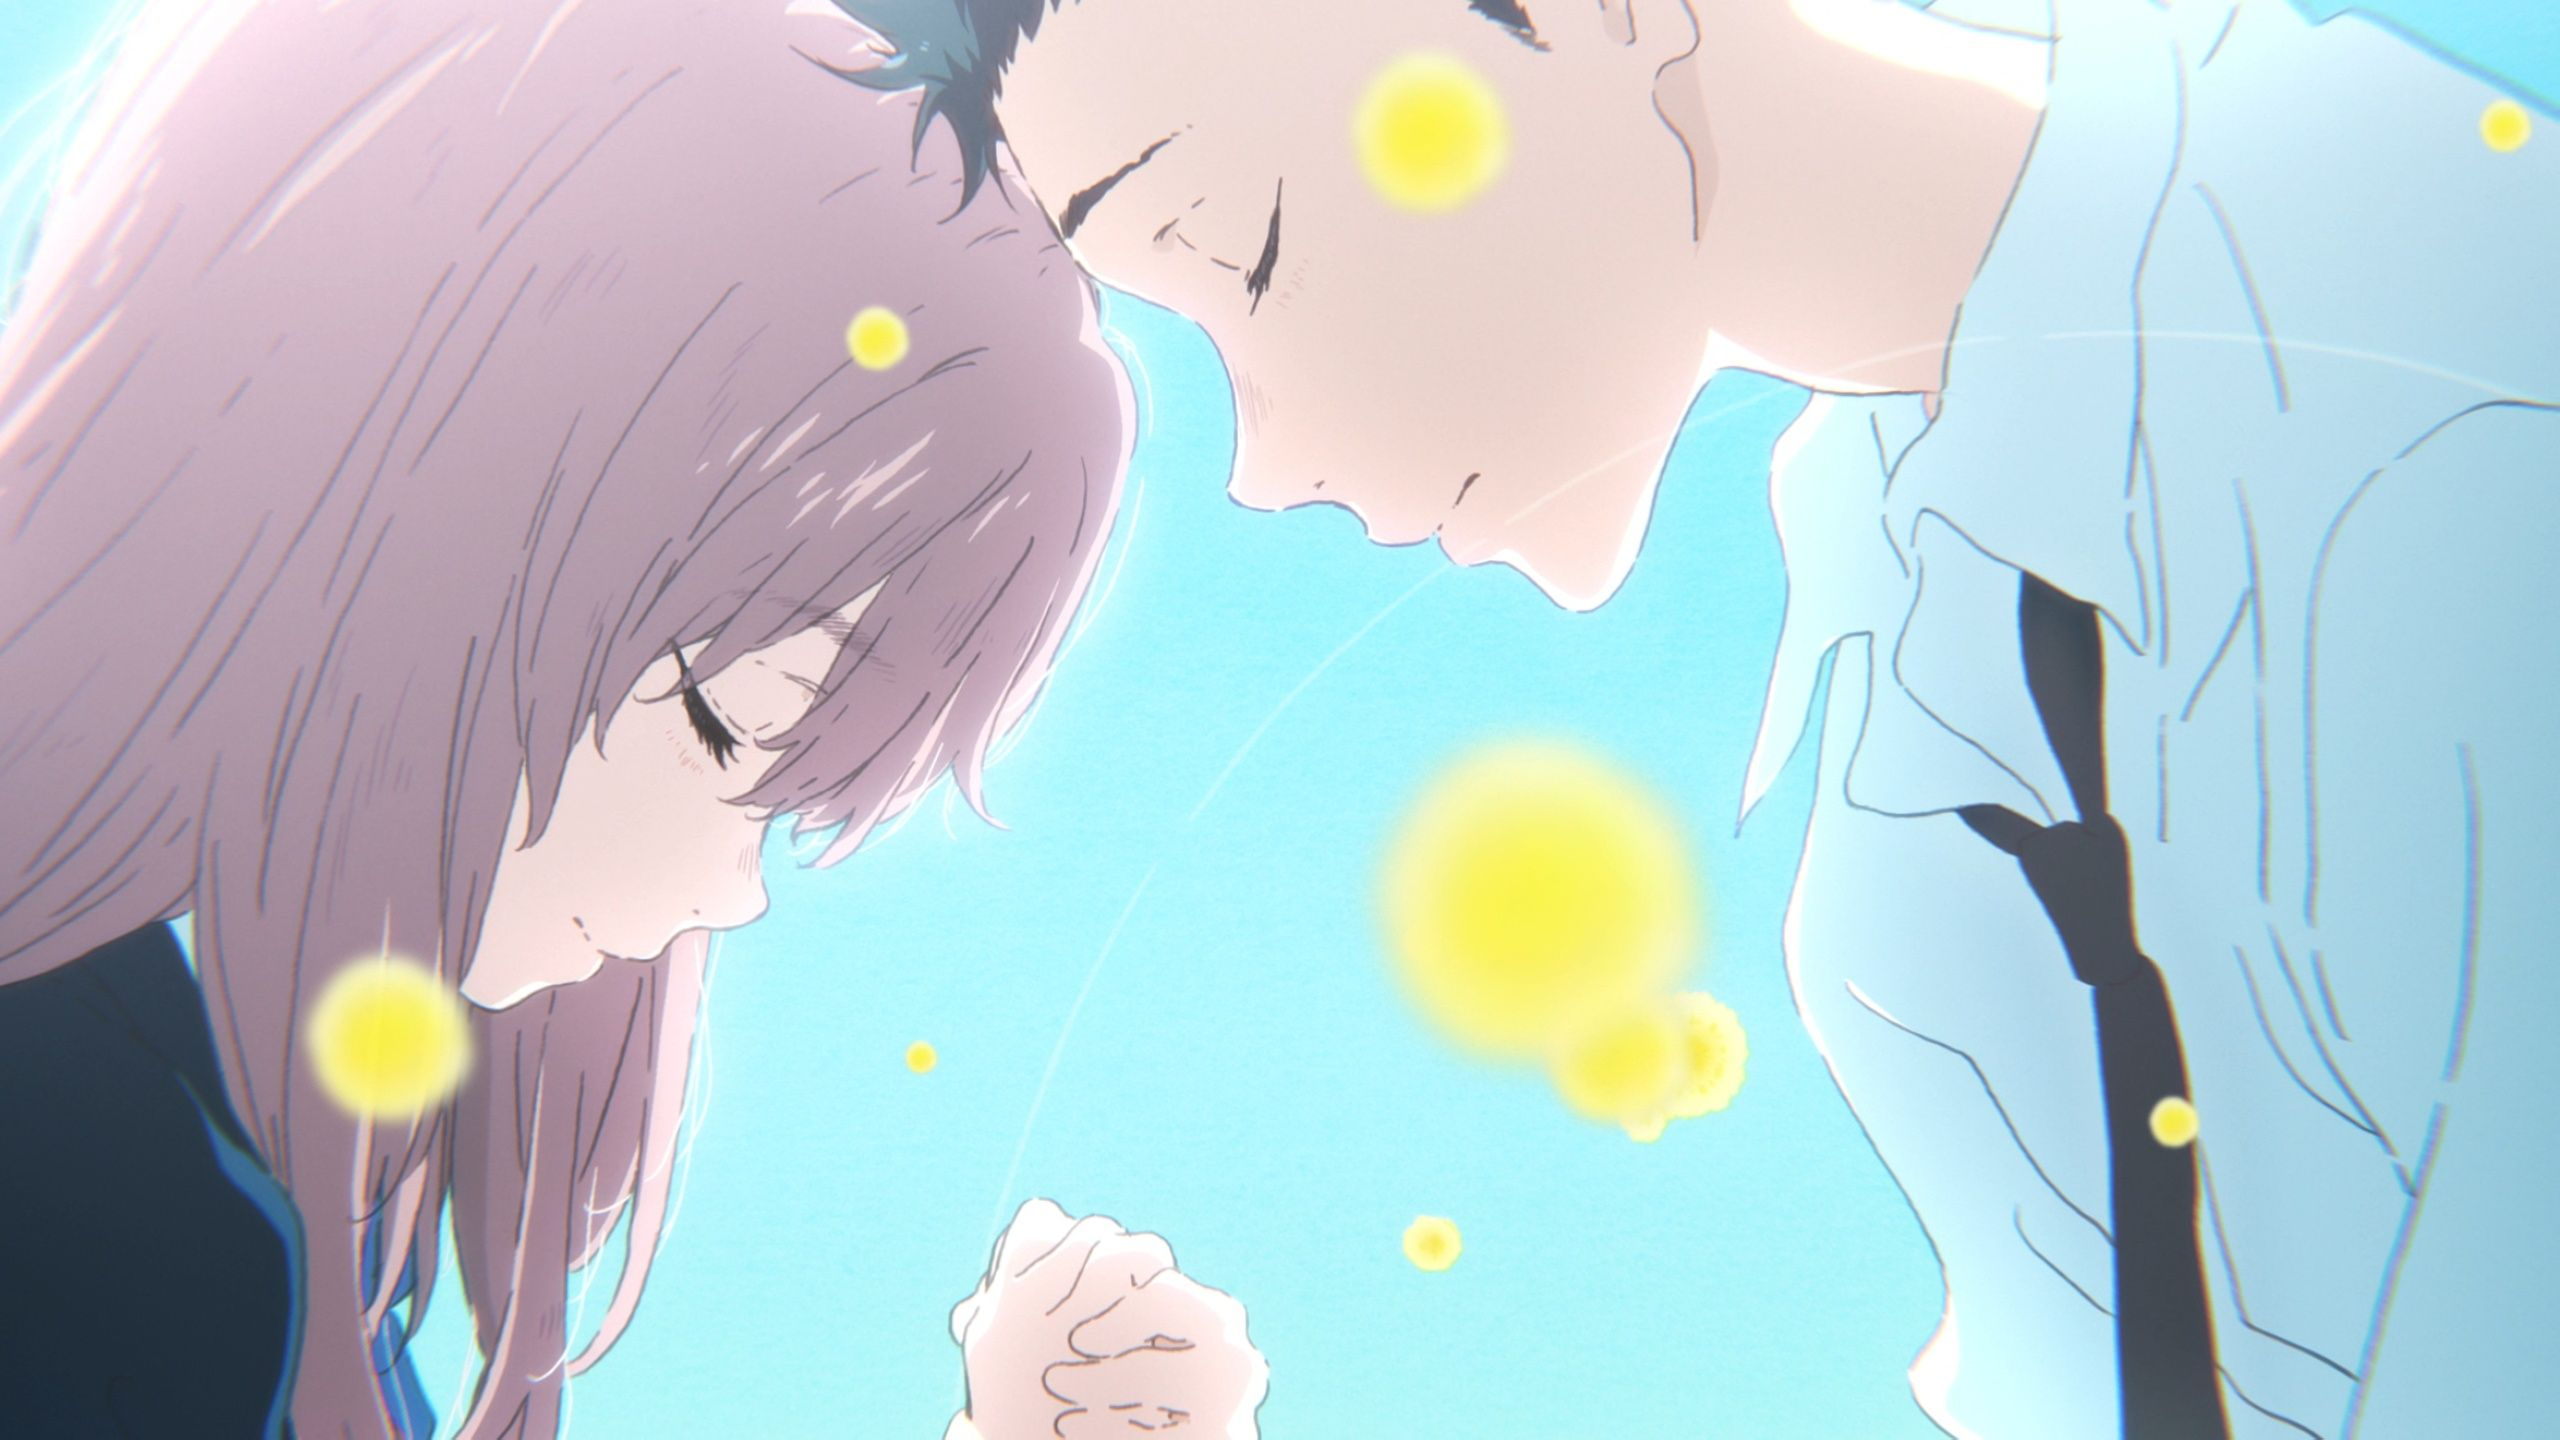 View Download Comment And Rate This 2560x1440 Koe No Katachi